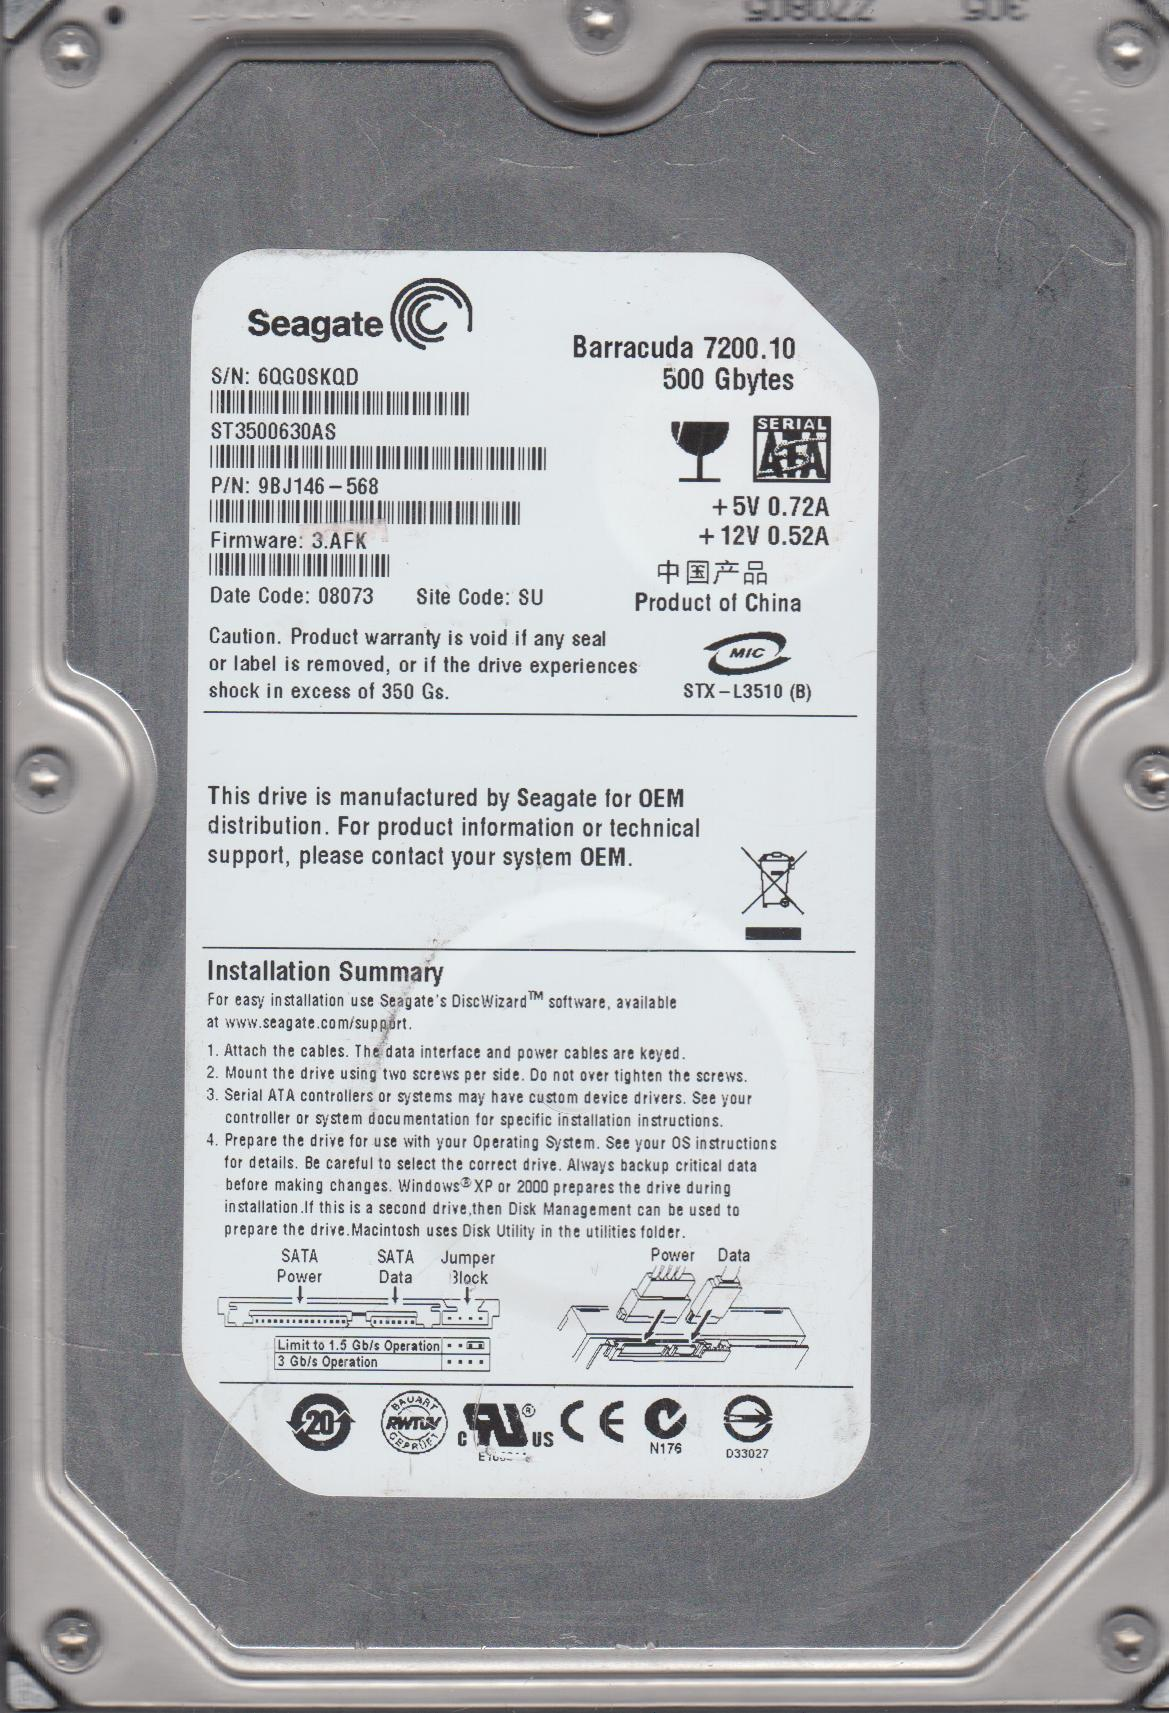 ST3500630AS, 6QG, SU, PN 9BJ146-568, FW 3.AFK, Seagate 500GB SATA 3.5 Hard Drive by Seagate